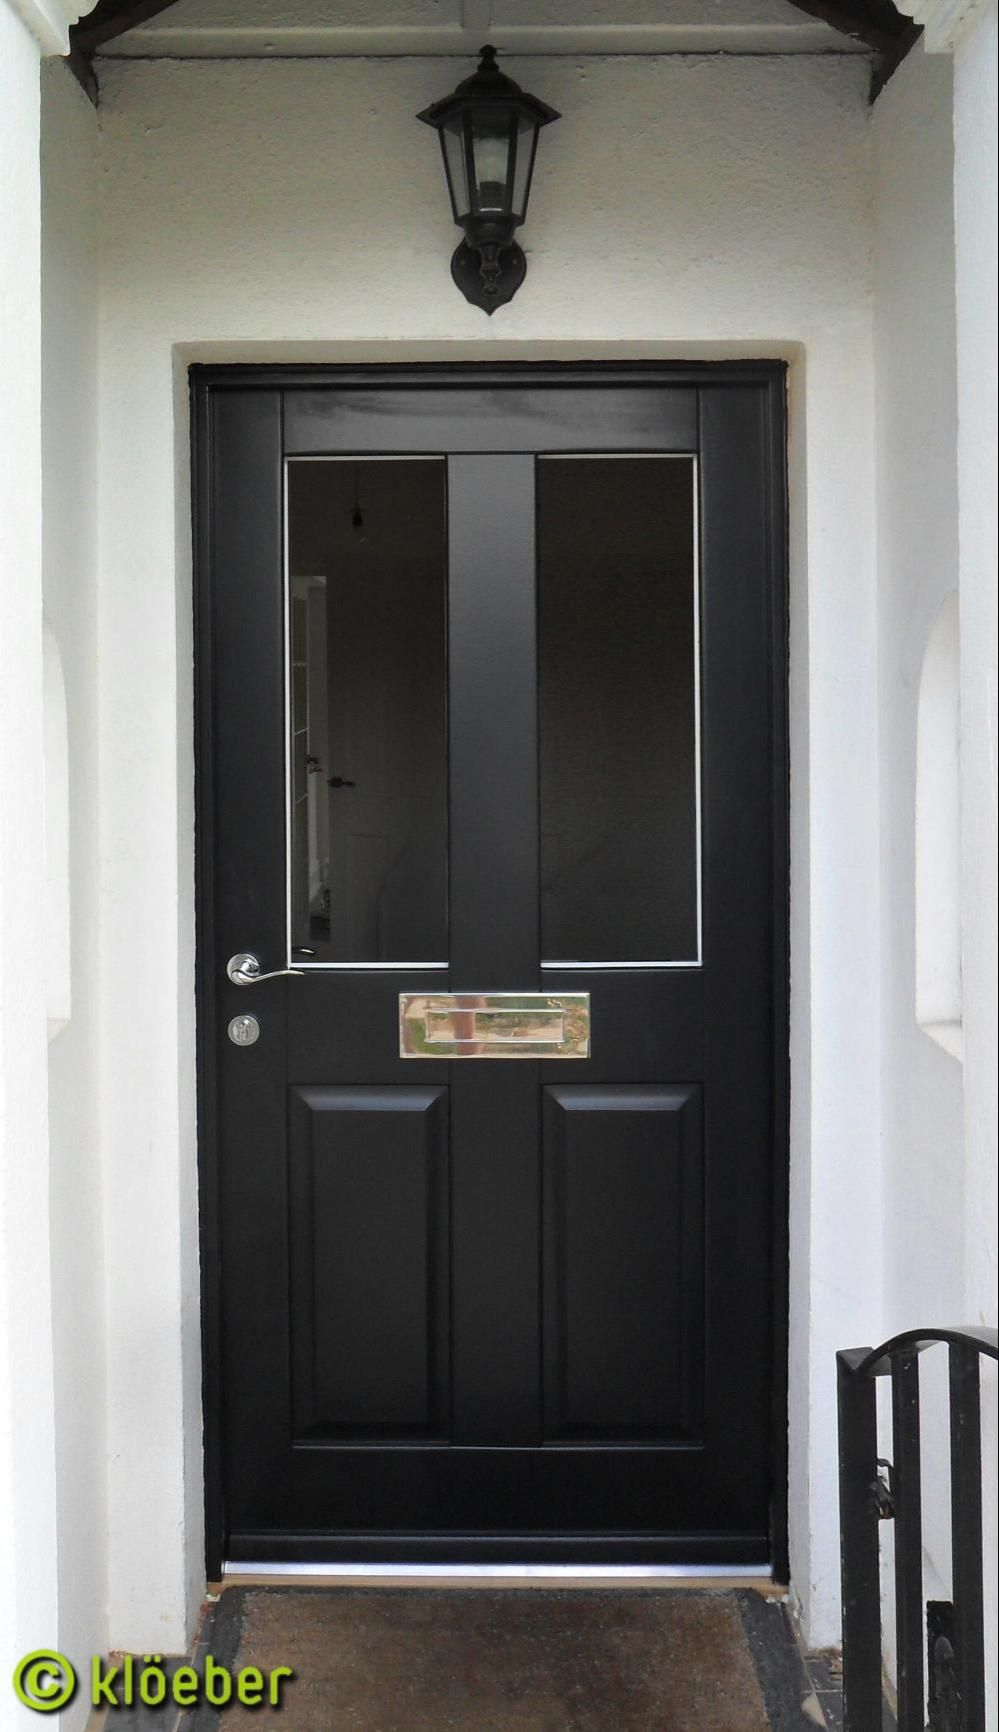 Kloeber gallery klassicfront traditional style doors for Traditional front doors